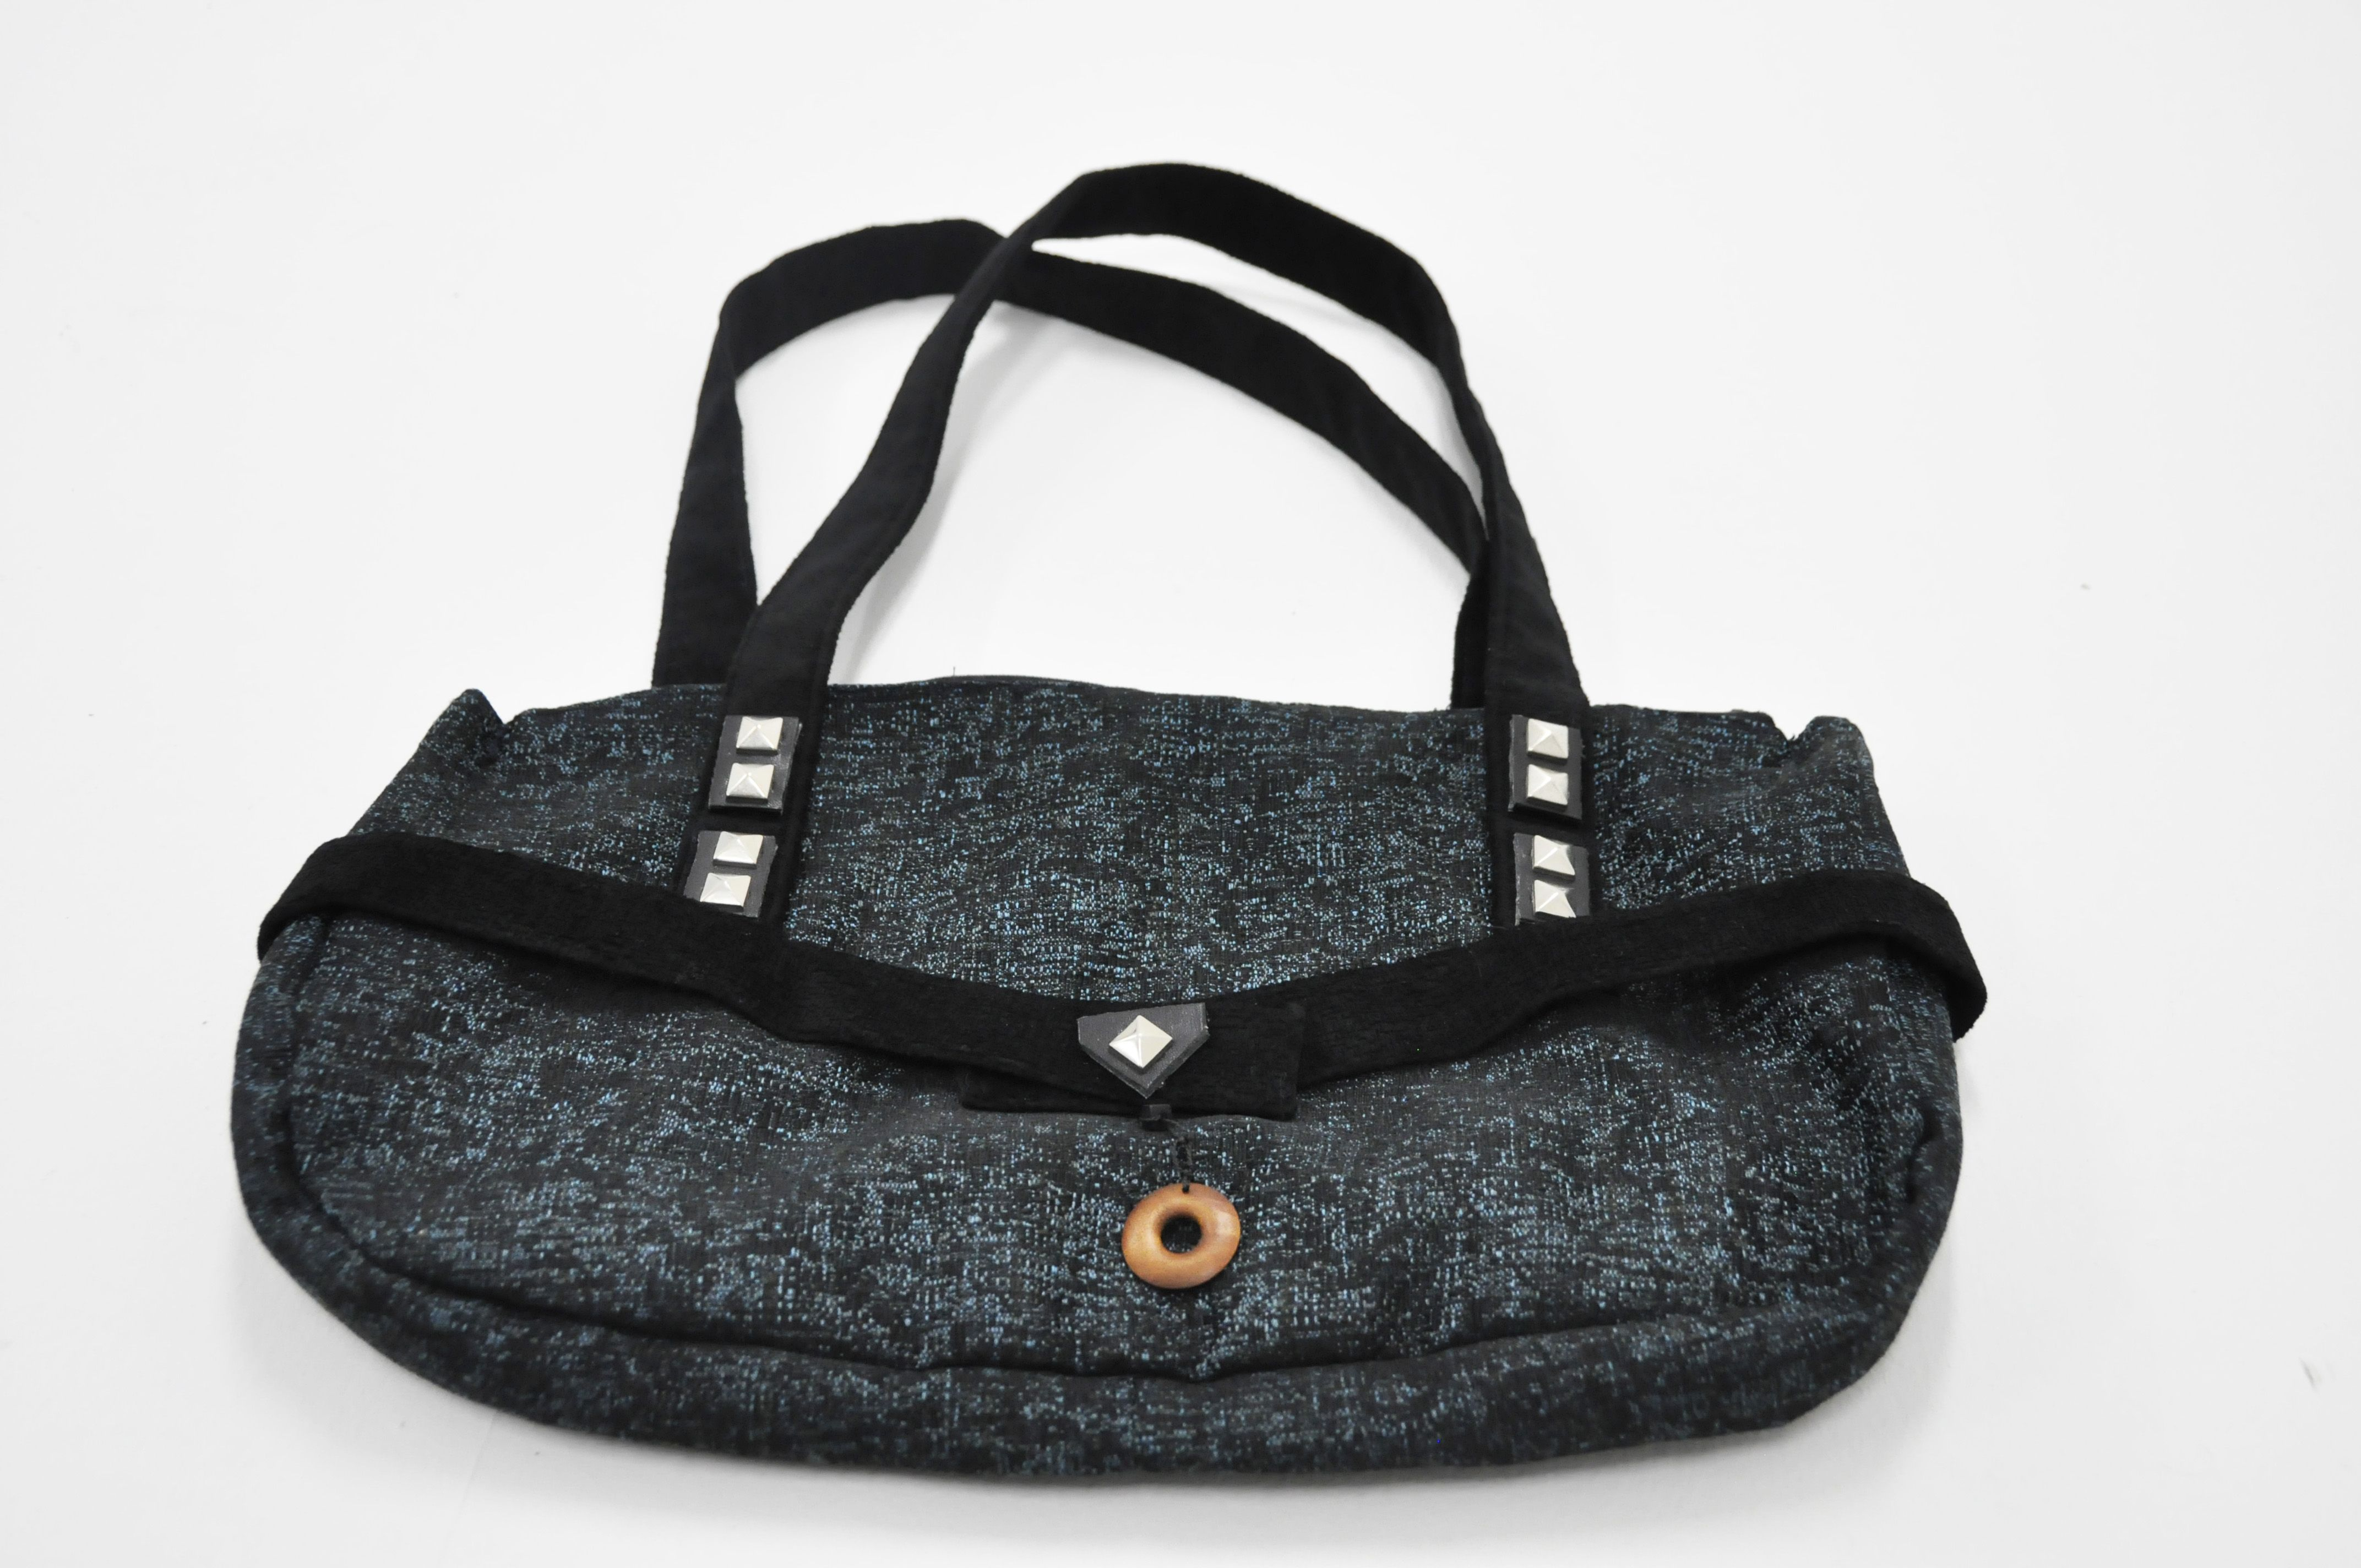 playing with textures, shapes and colors  As a result pretty and useful handbags